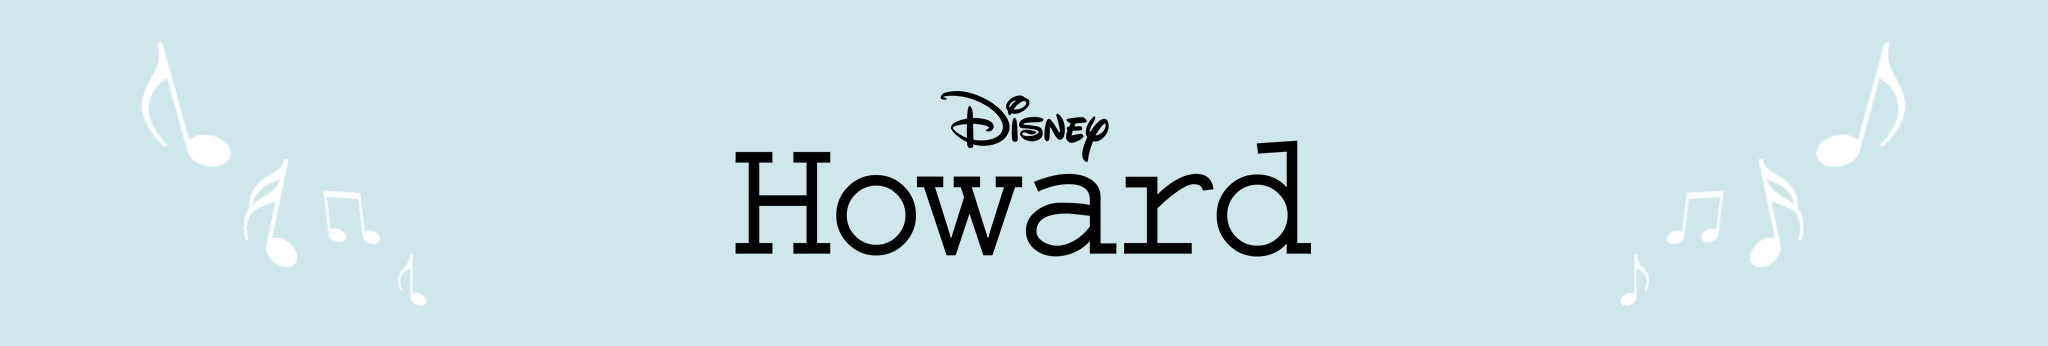 Disney | Howard